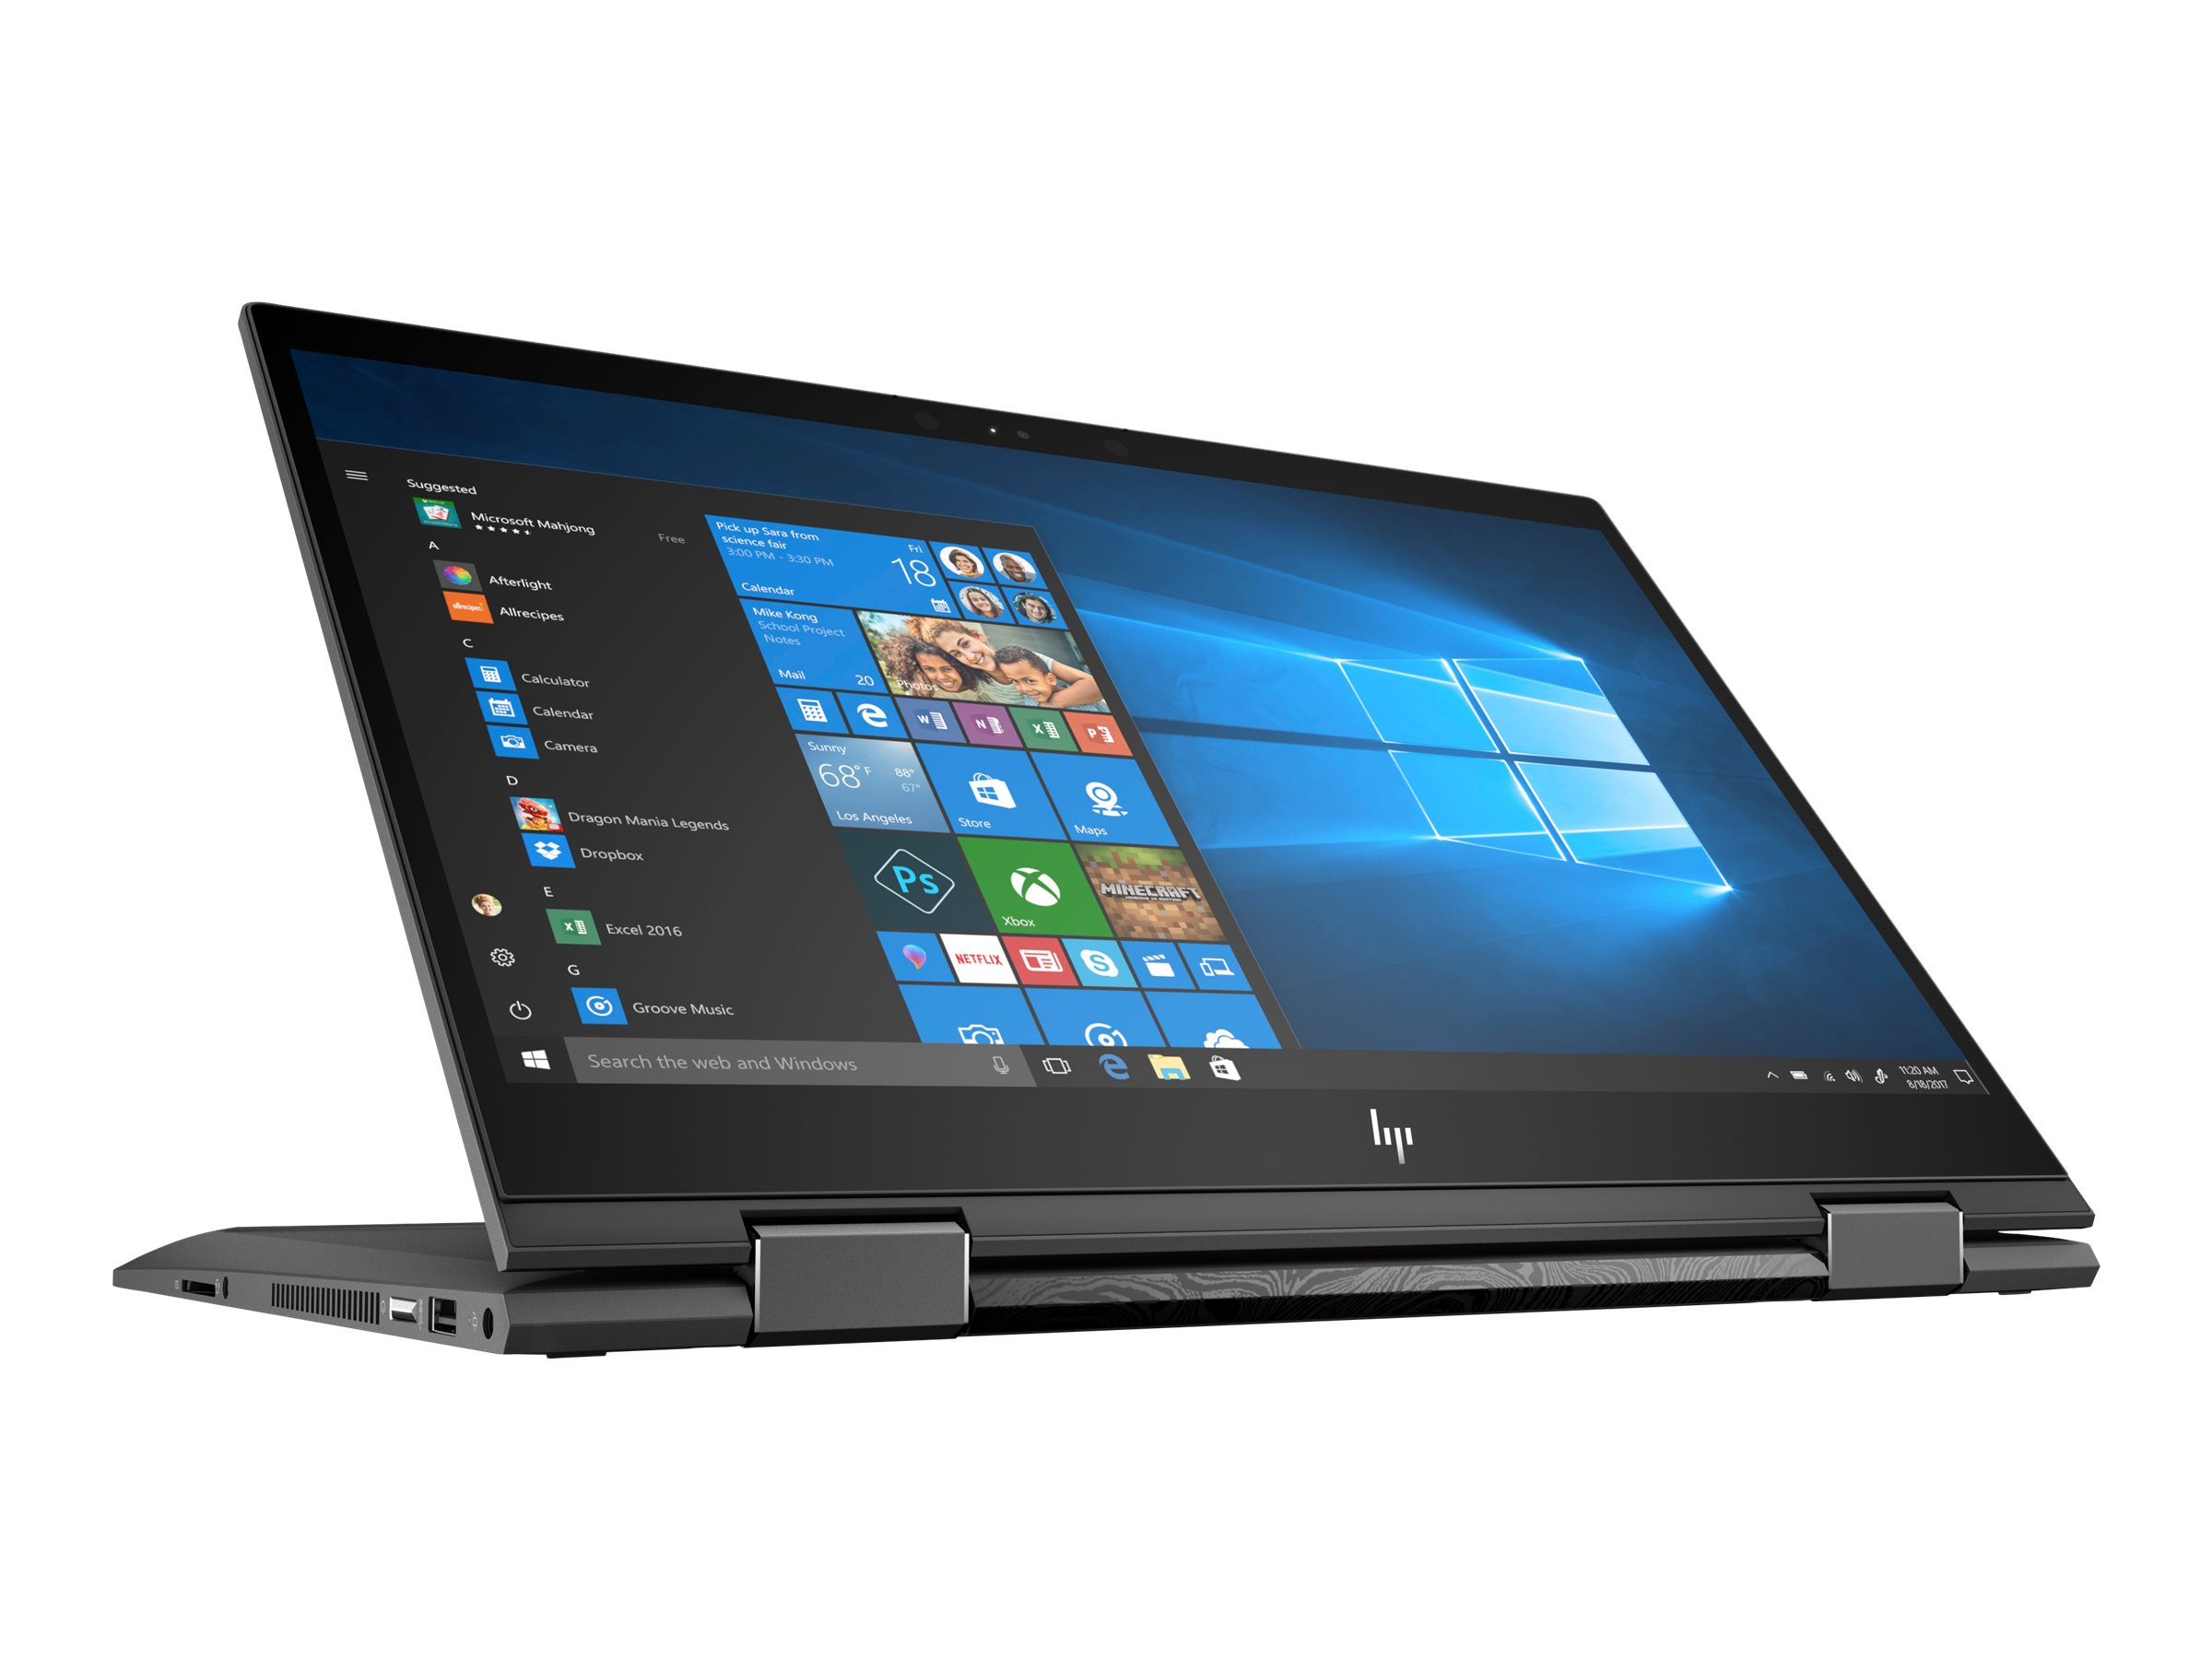 "HP ENVY x360 15 cp0001na 15 6"" Ryzen 7 2700U 8 GB RAM 256 GB SSD 1 TB HDD UK 4RE08EA ABU HP Laptops puters Products"